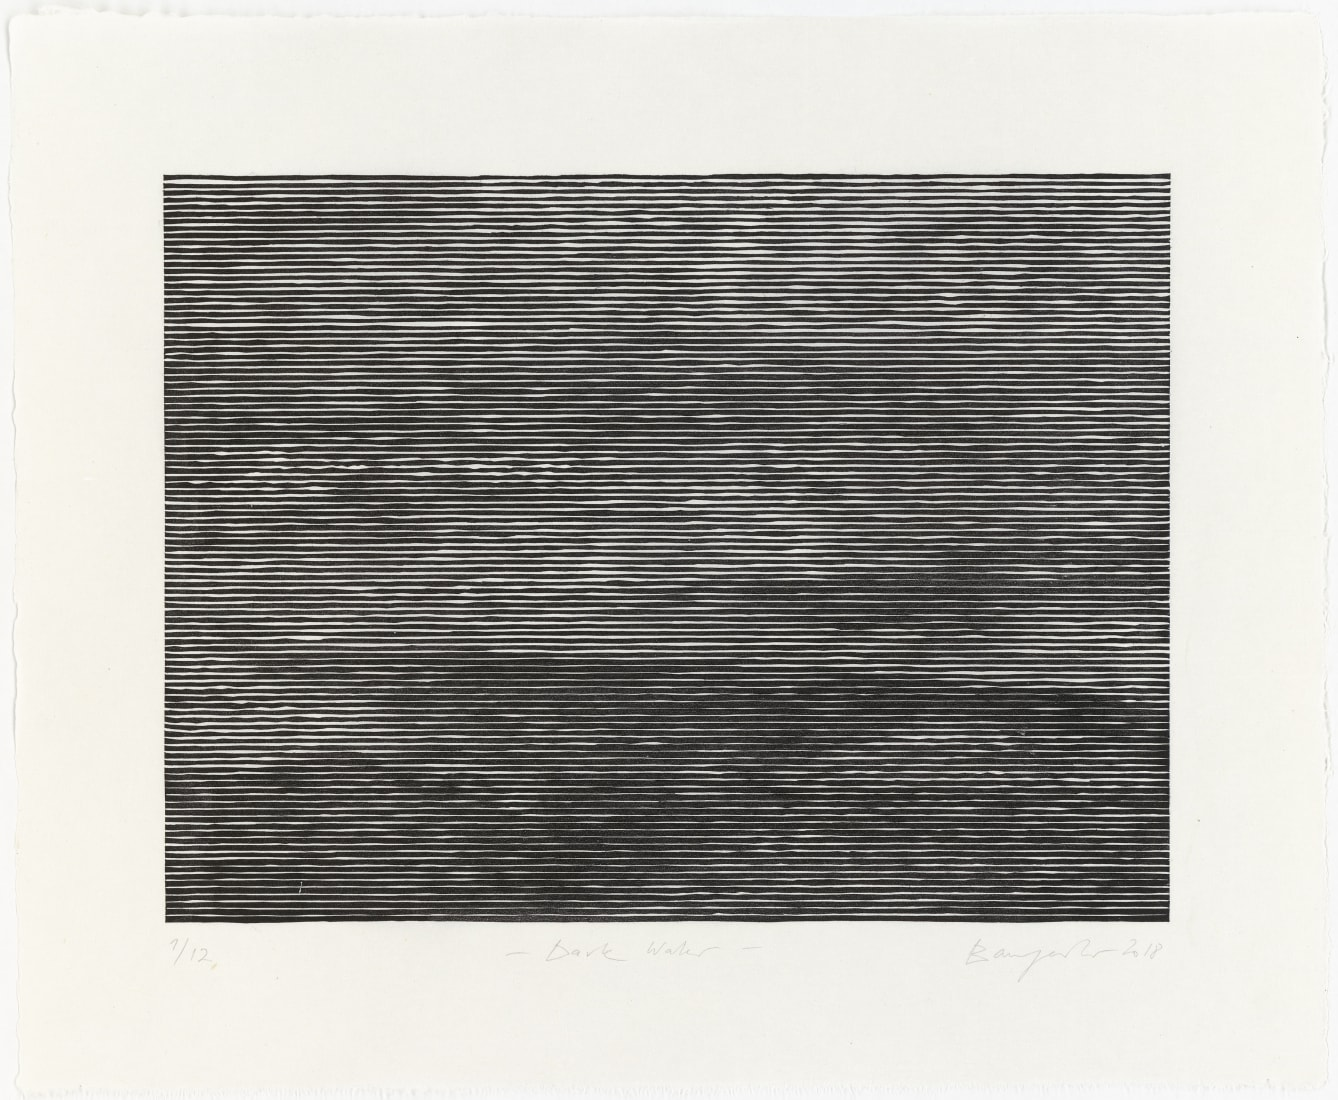 <p><em><strong>Dark Water</strong></em>, 2018</p><p>Woodcut&#160;<br />Paper 48.0 x 59.5 cm / image 33.8 x 45.3 cm<br />Edition of 12</p>